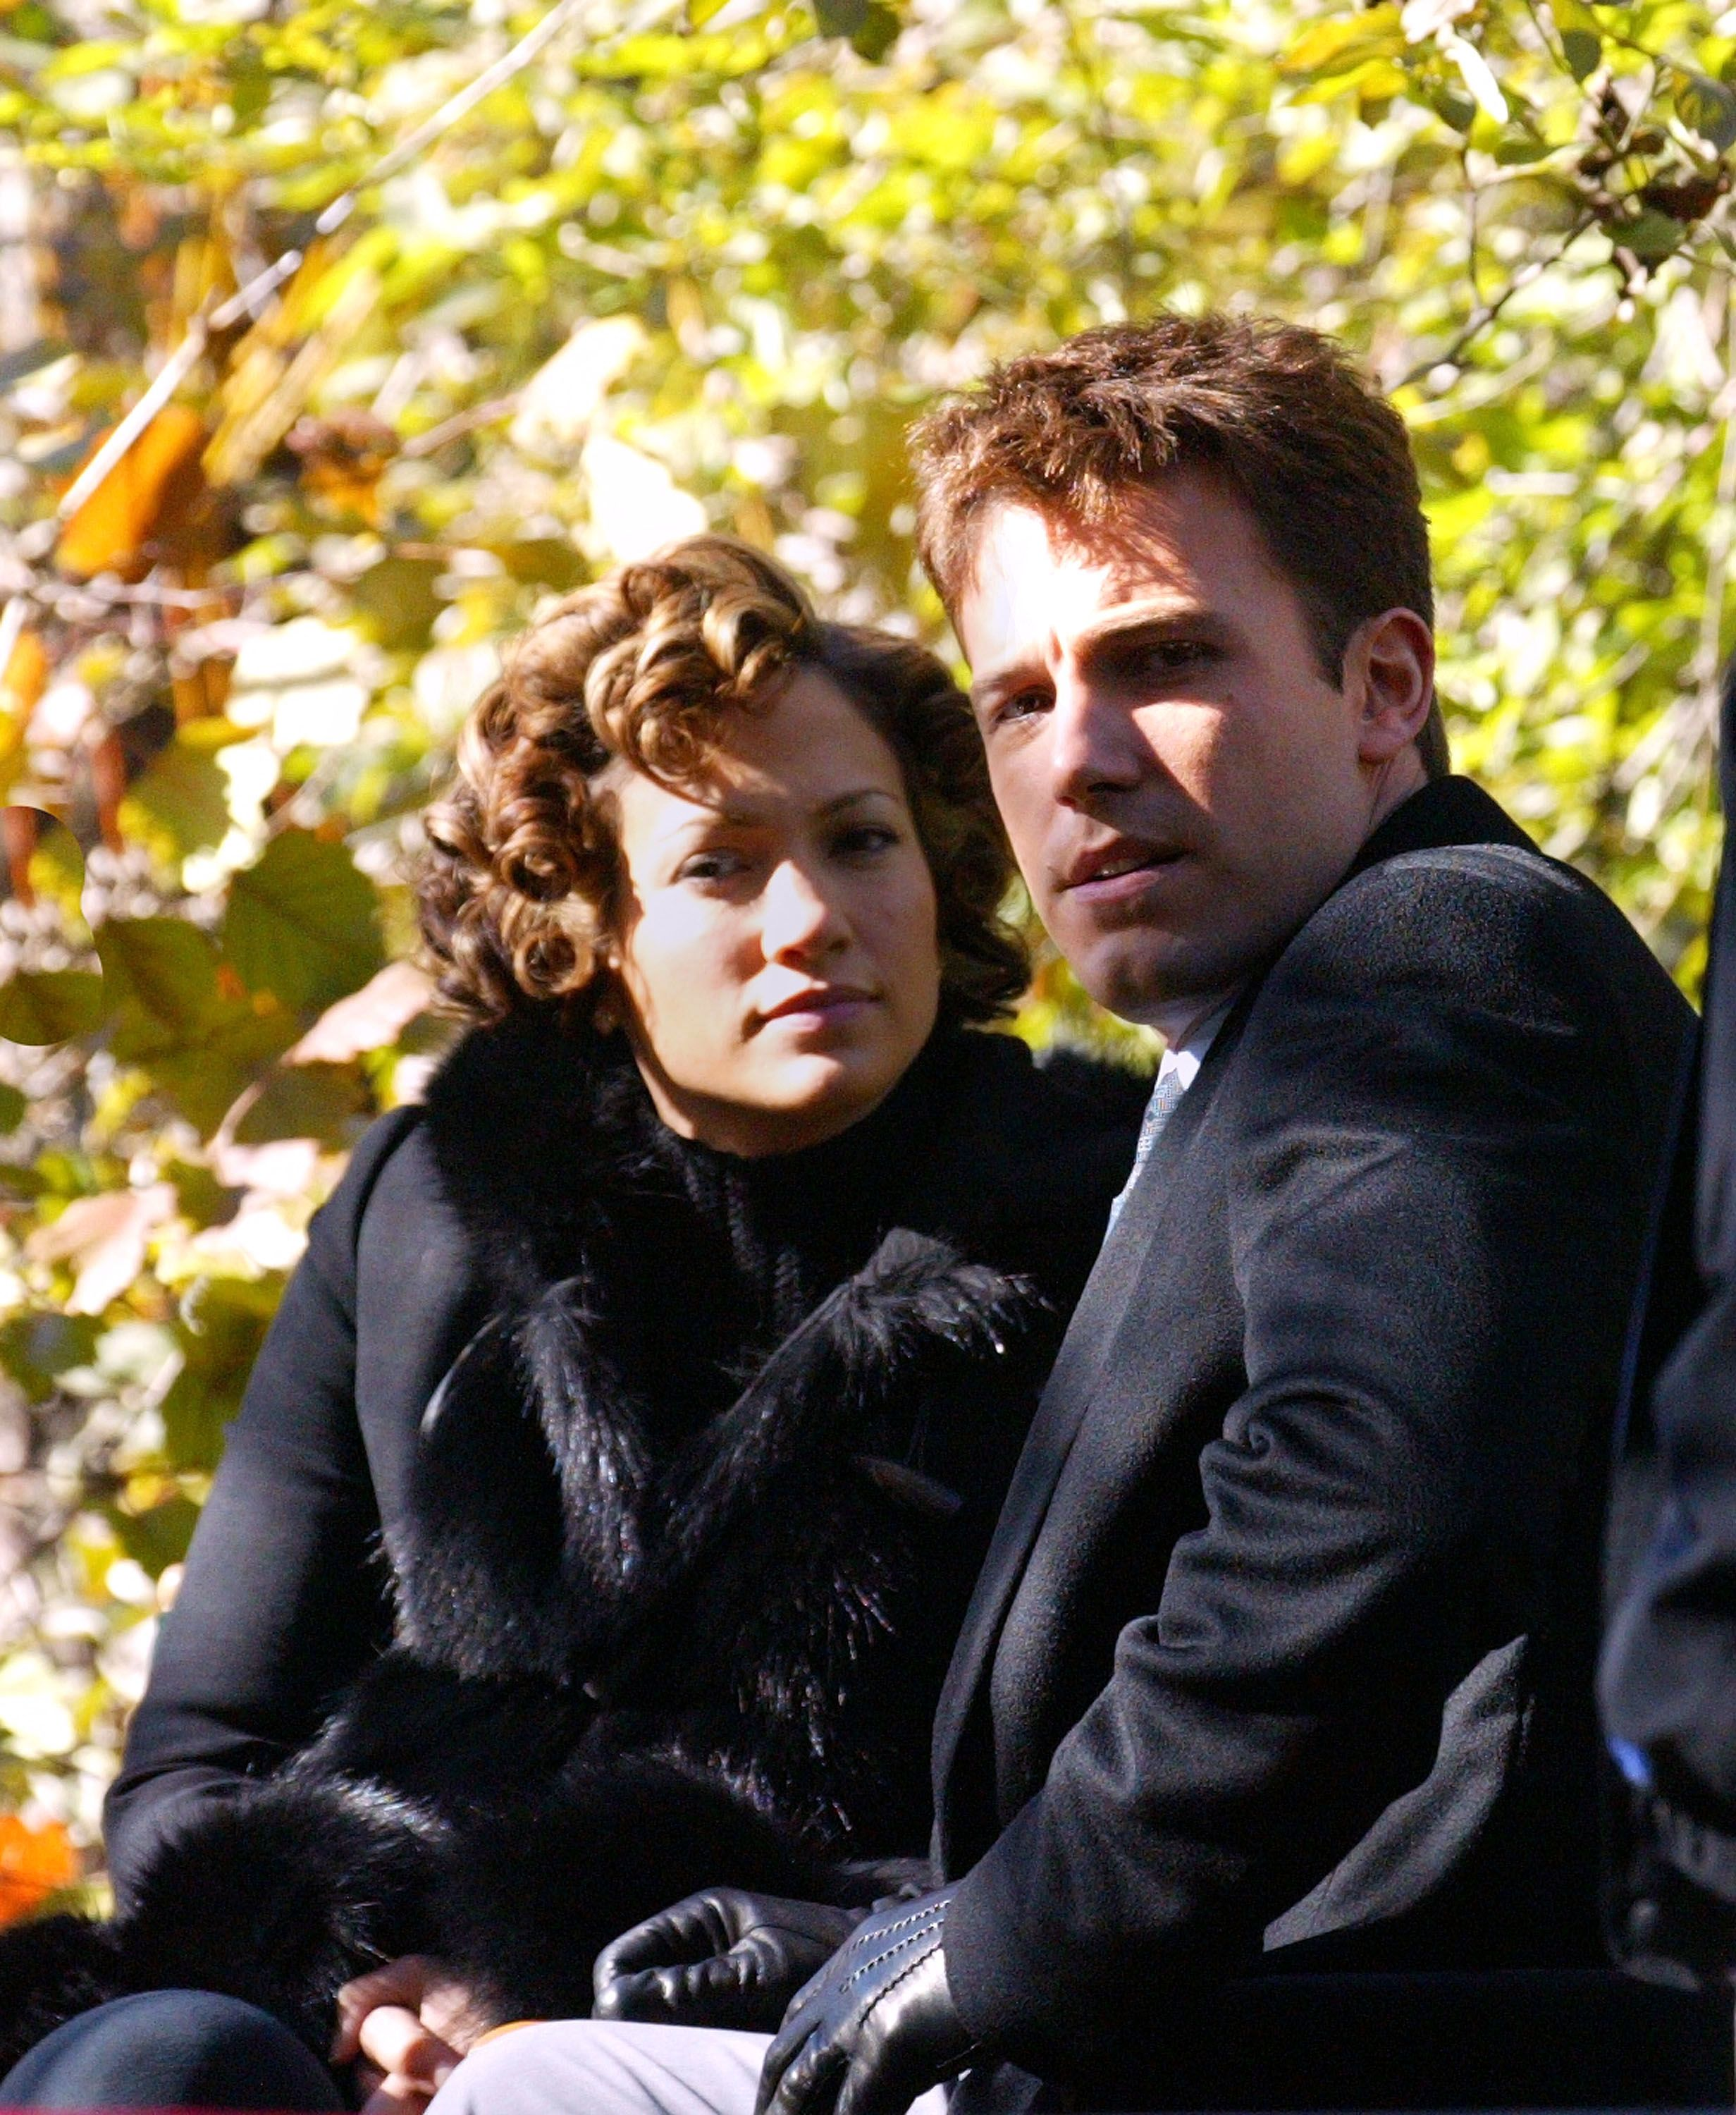 """Jennifer Lopez and Ben Affleck on the set of """"Jersey Girl"""" in Central Park on November 7, 2002, in New York City 